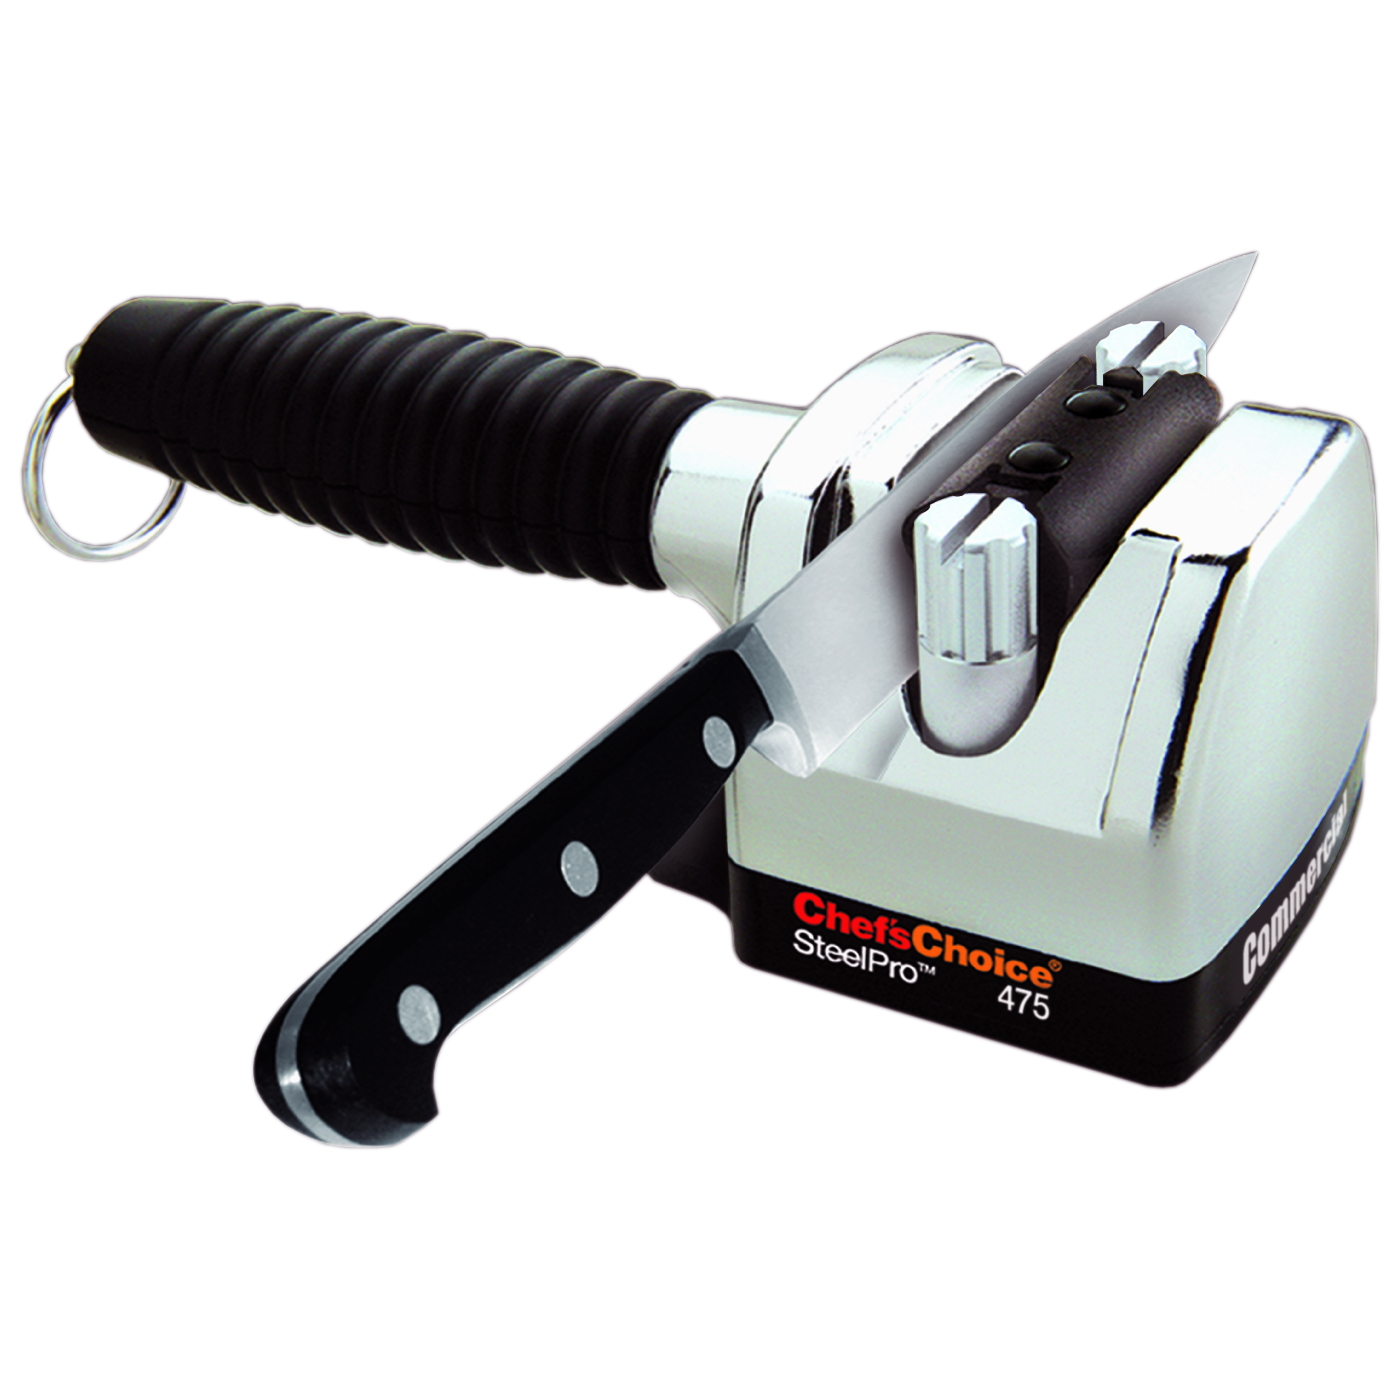 Chef's Choice M475 Commercial SteelPro Heavy Cast Metal Knife Sharpener